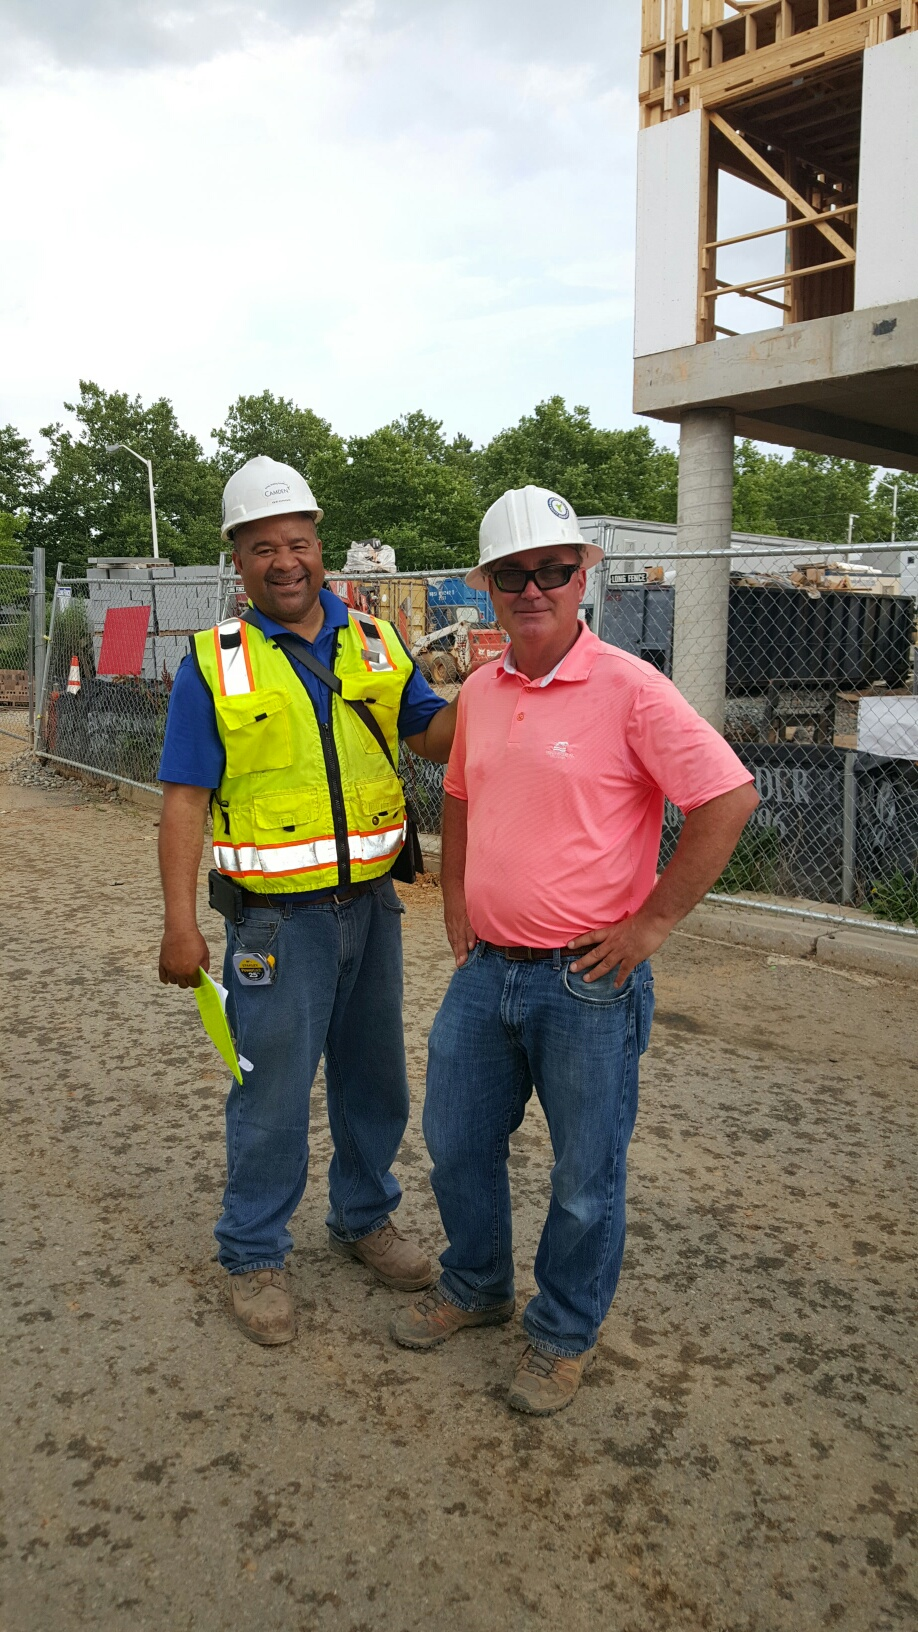 Camden's construction team stopping for a photo. Image by Duane Canter.